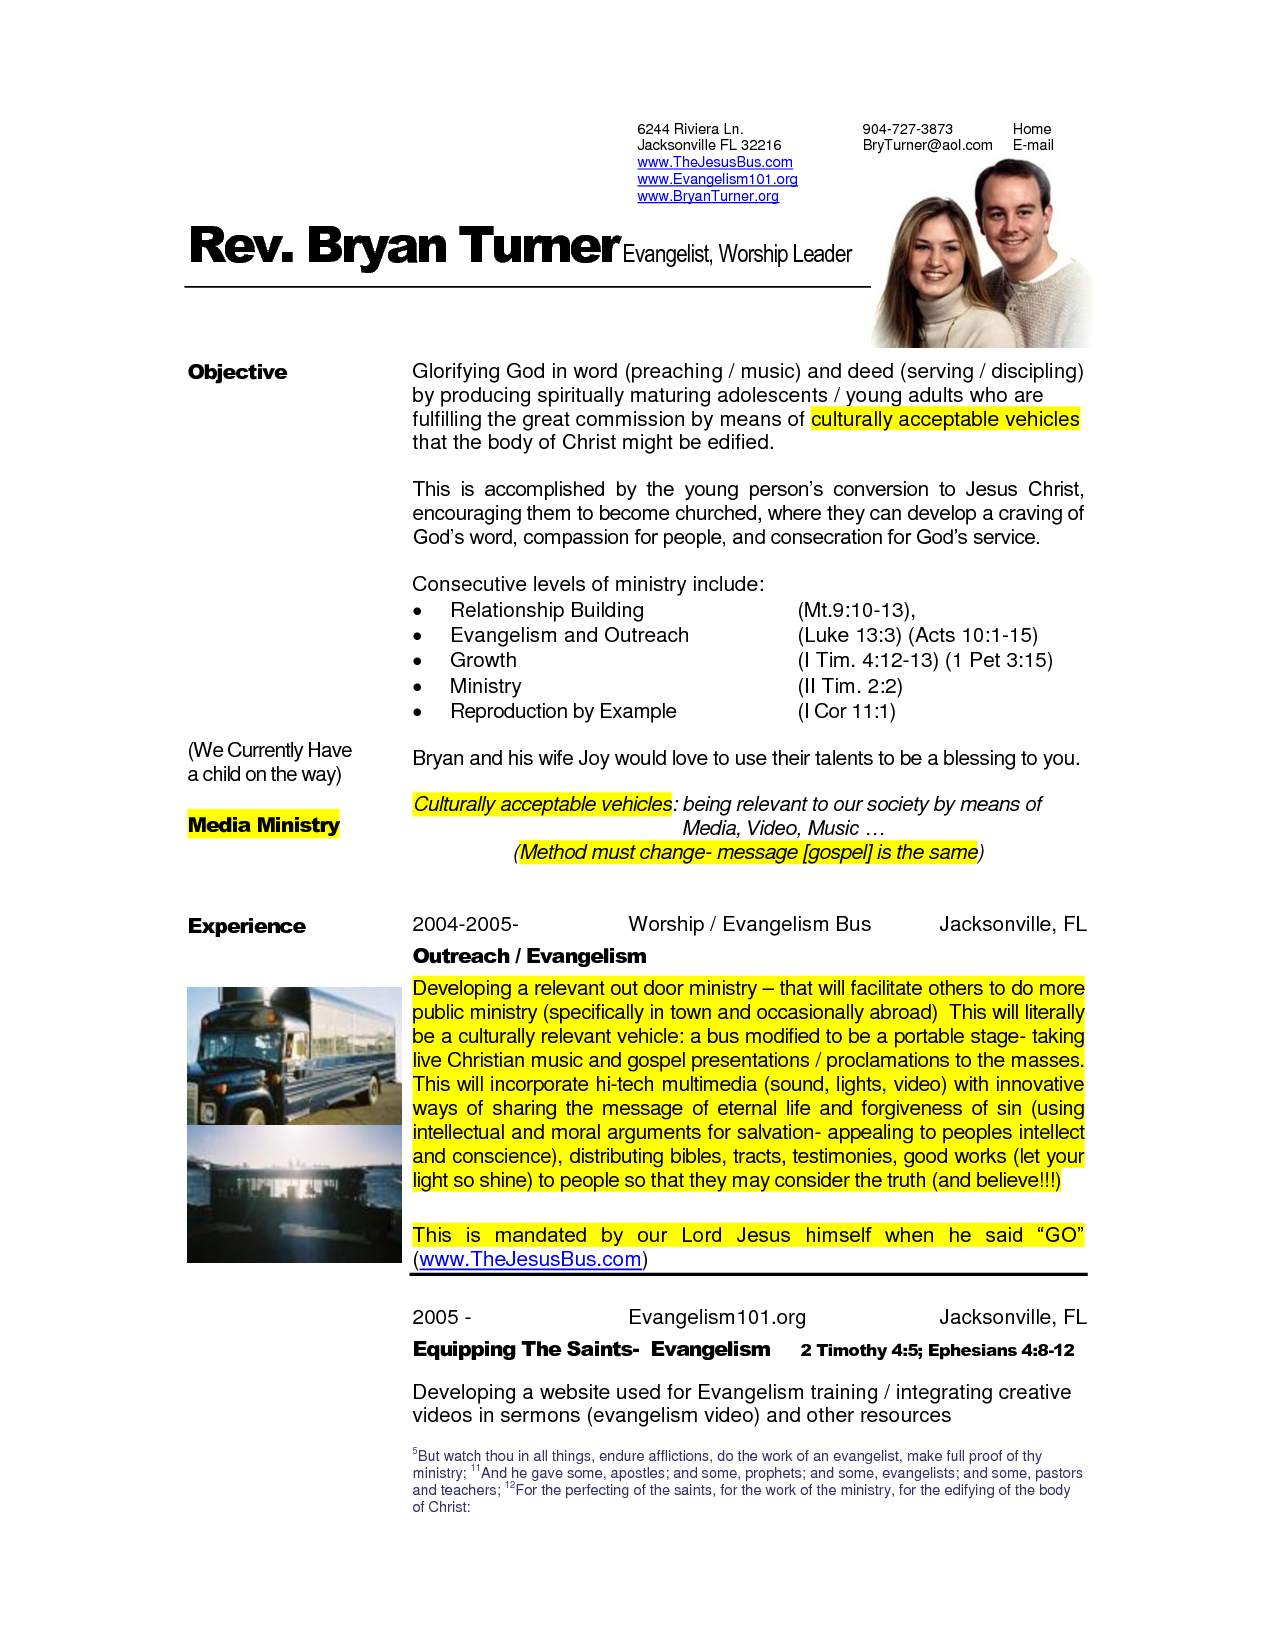 Charming Free Examples Of Pastoral Resumes | How To Write A Pastor Resume To Sample Ministry Resume